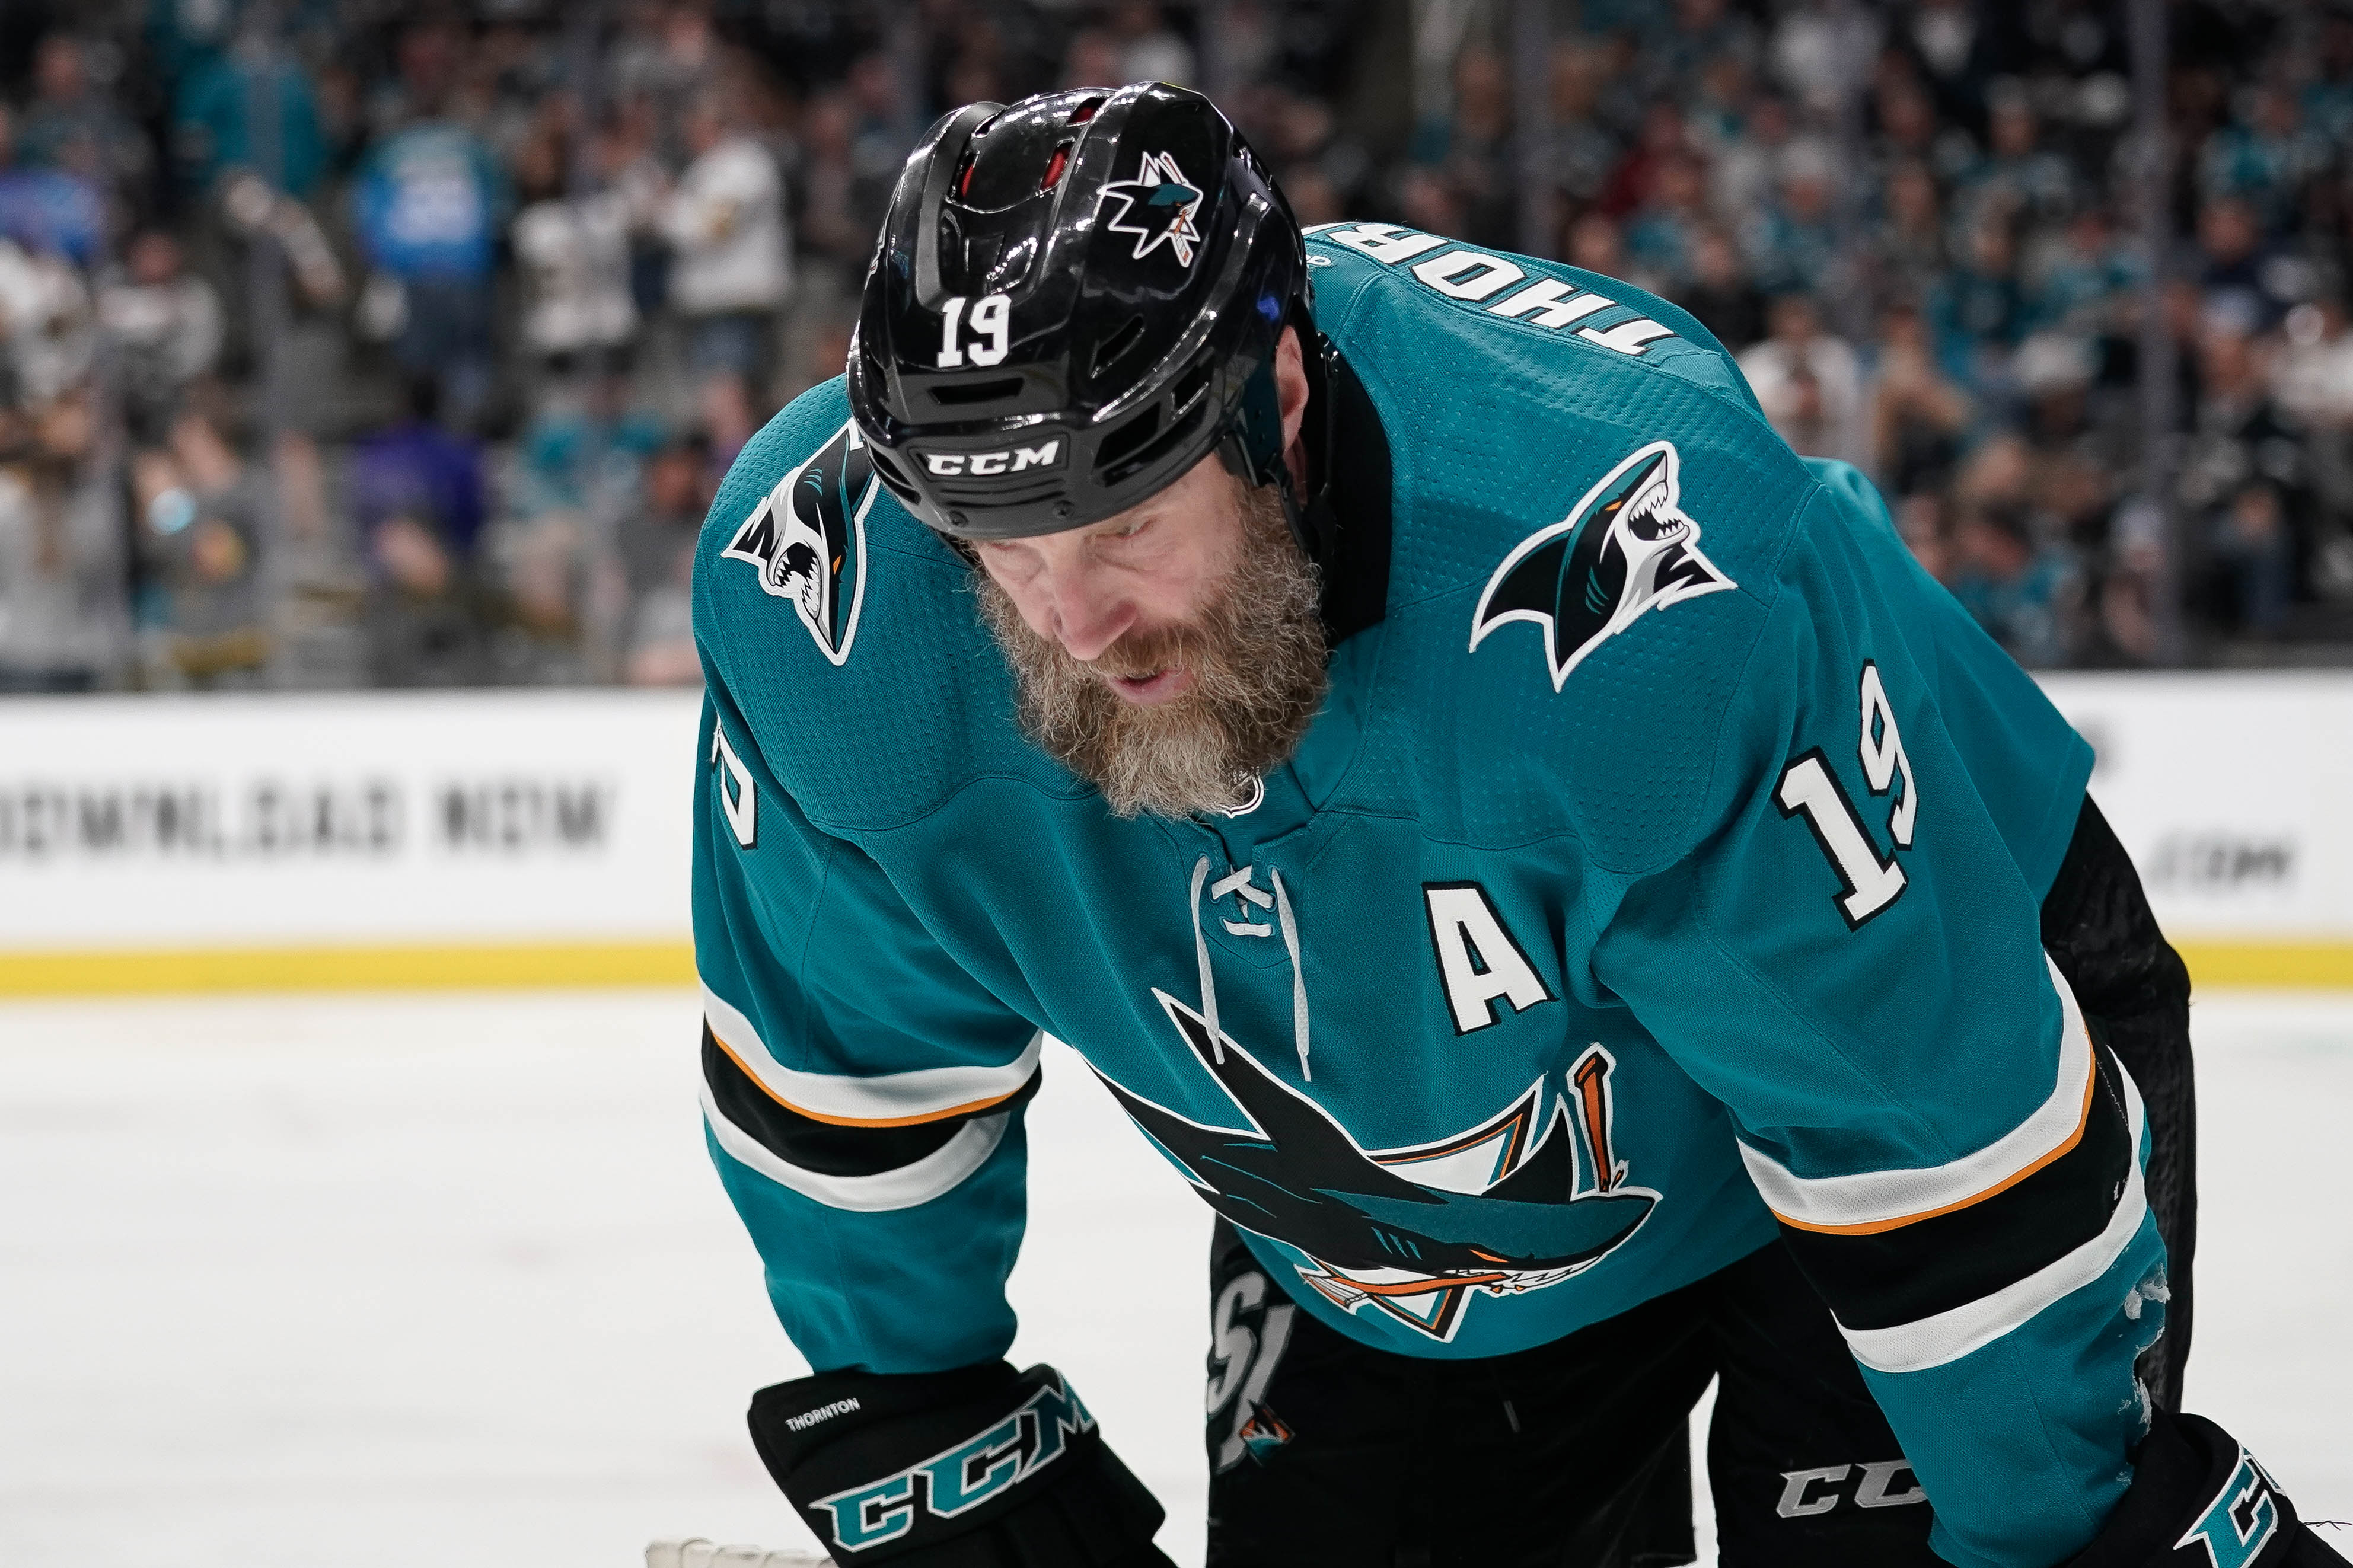 San Jose Sharks center Joe Thornton (19) reacts against the Vegas Golden Knights during the third period in game two of the first round of the 2019 Stanley Cup Playoffs at SAP Center at San Jose.